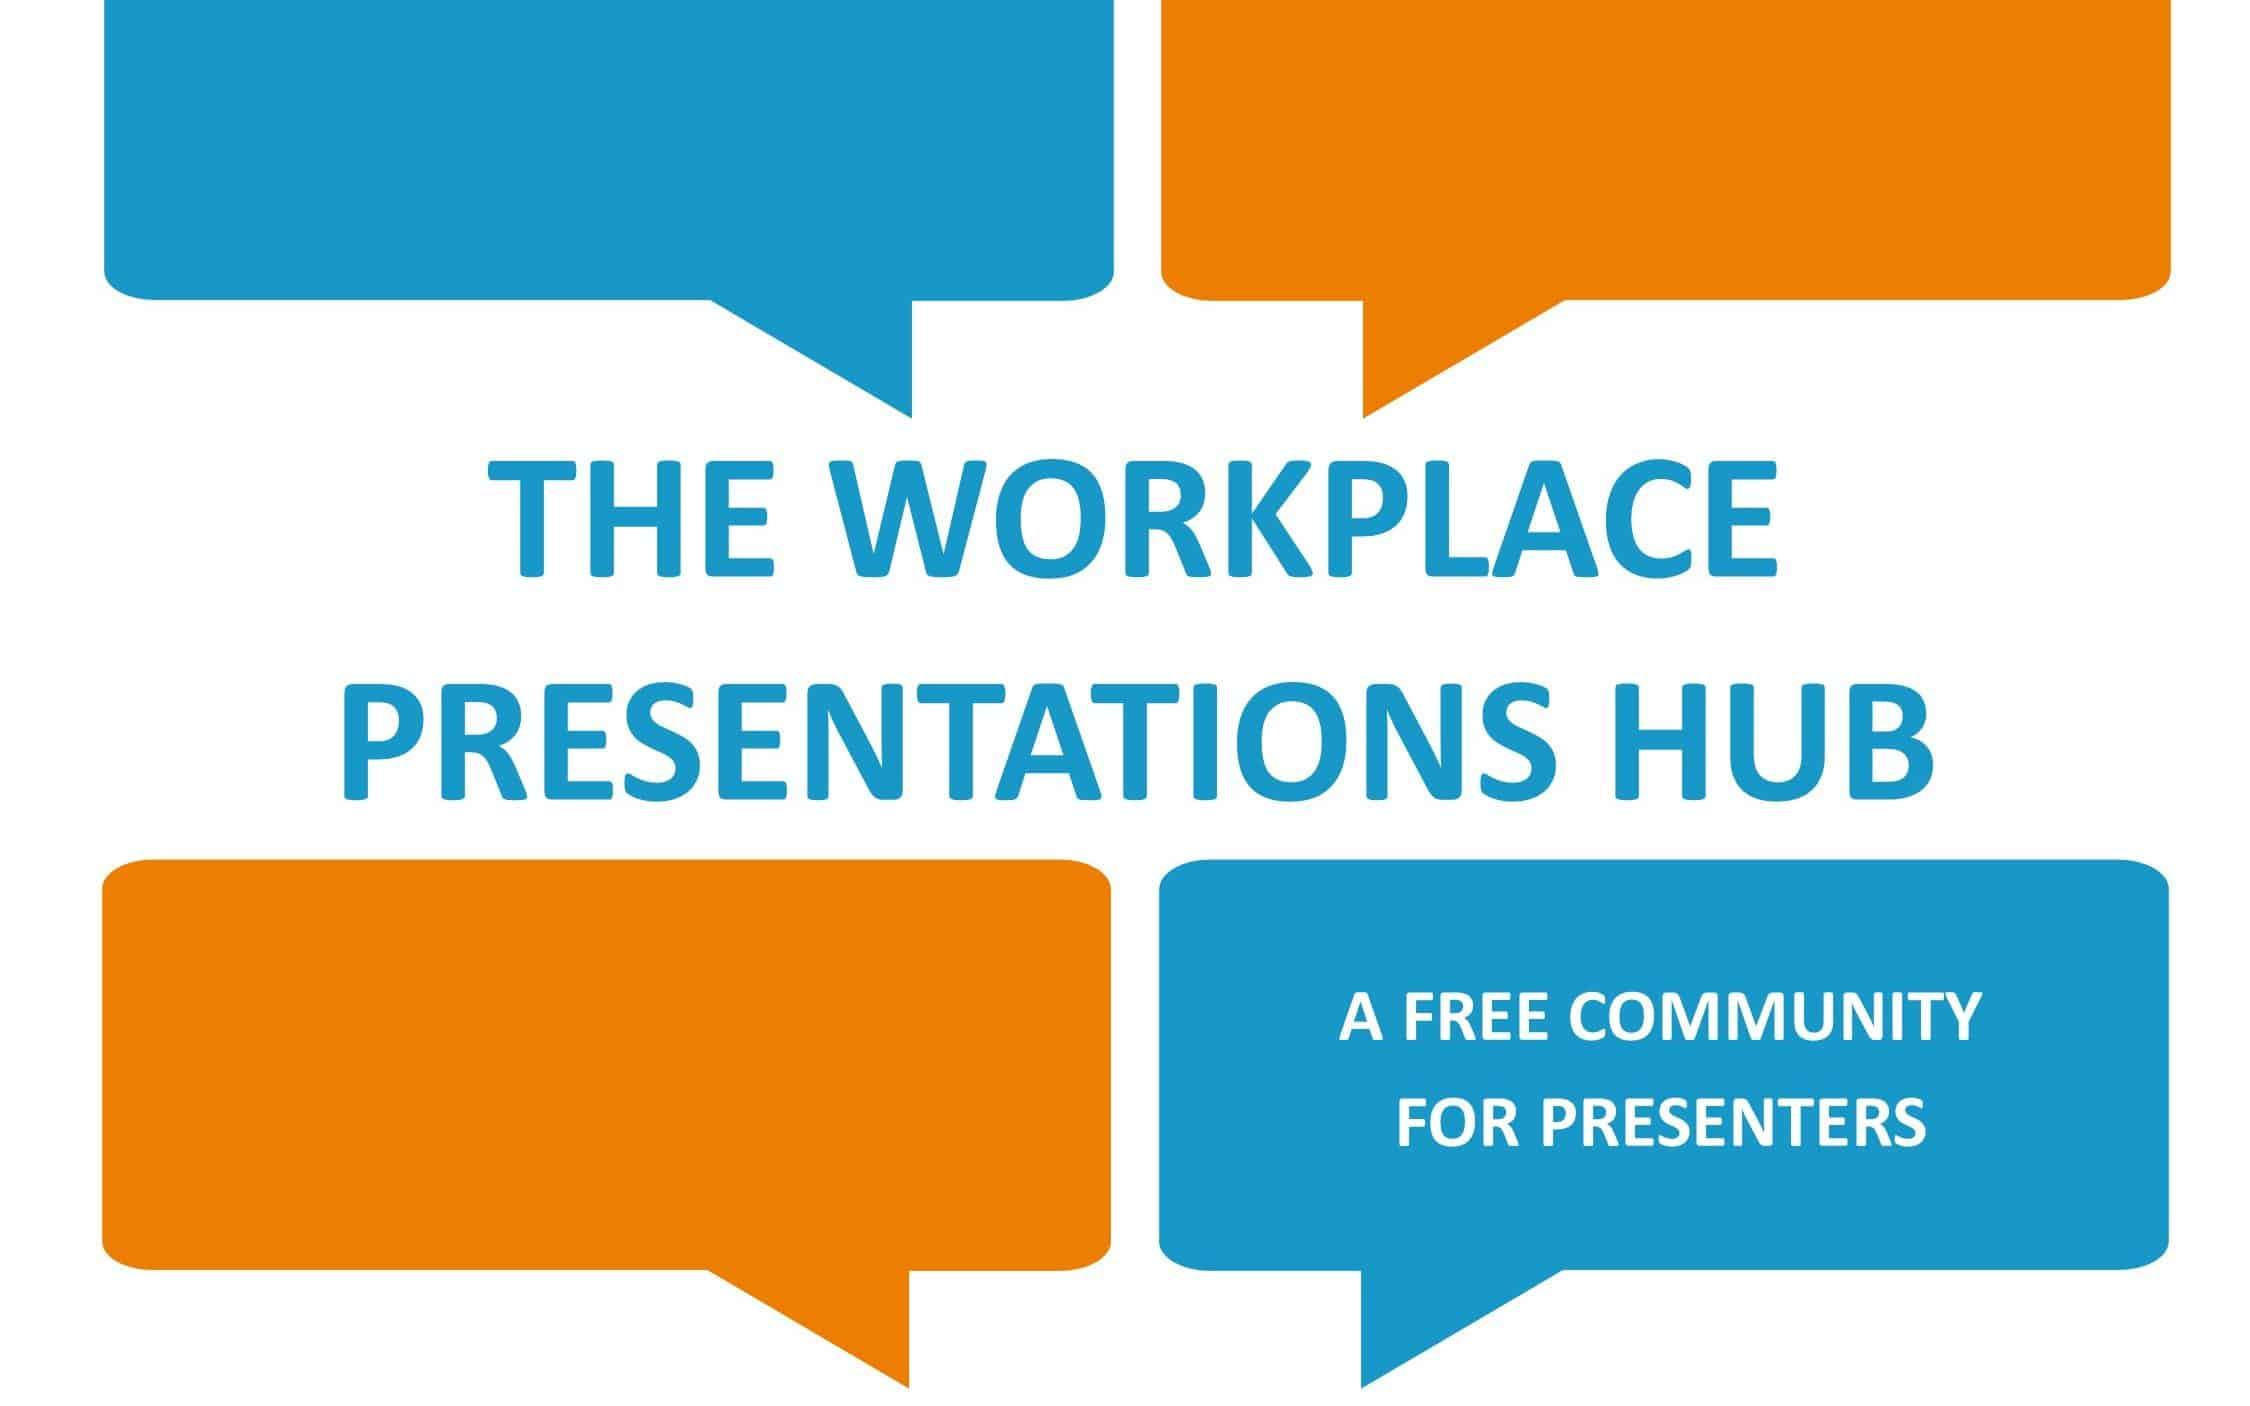 WORKPLACE PRESENTATIONS: 4 TIPS FOR SUCCESS